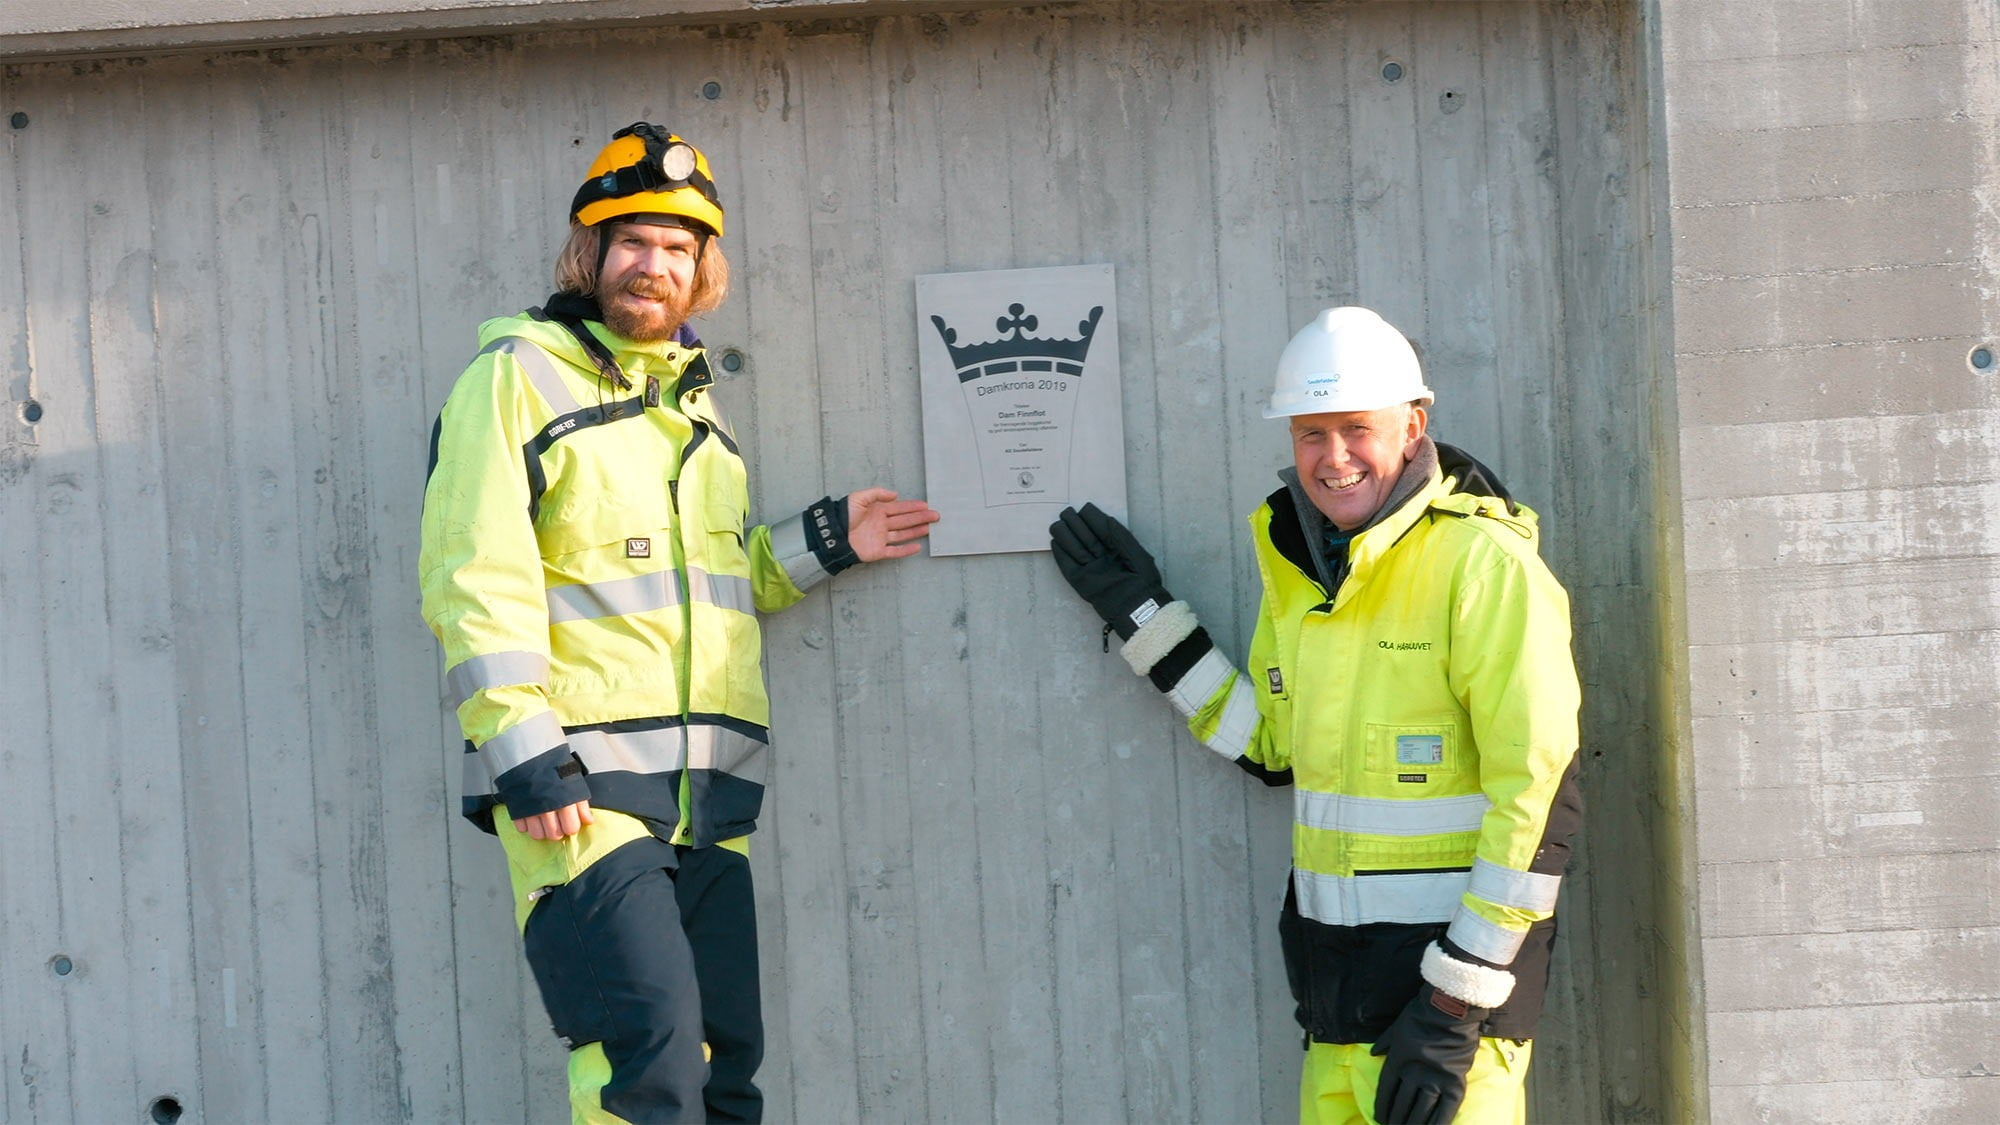 High-visibility clothing, Hard hat, Smile, Outerwear, Workwear, Helmet, Glove, Sleeve, Yellow, Jacket